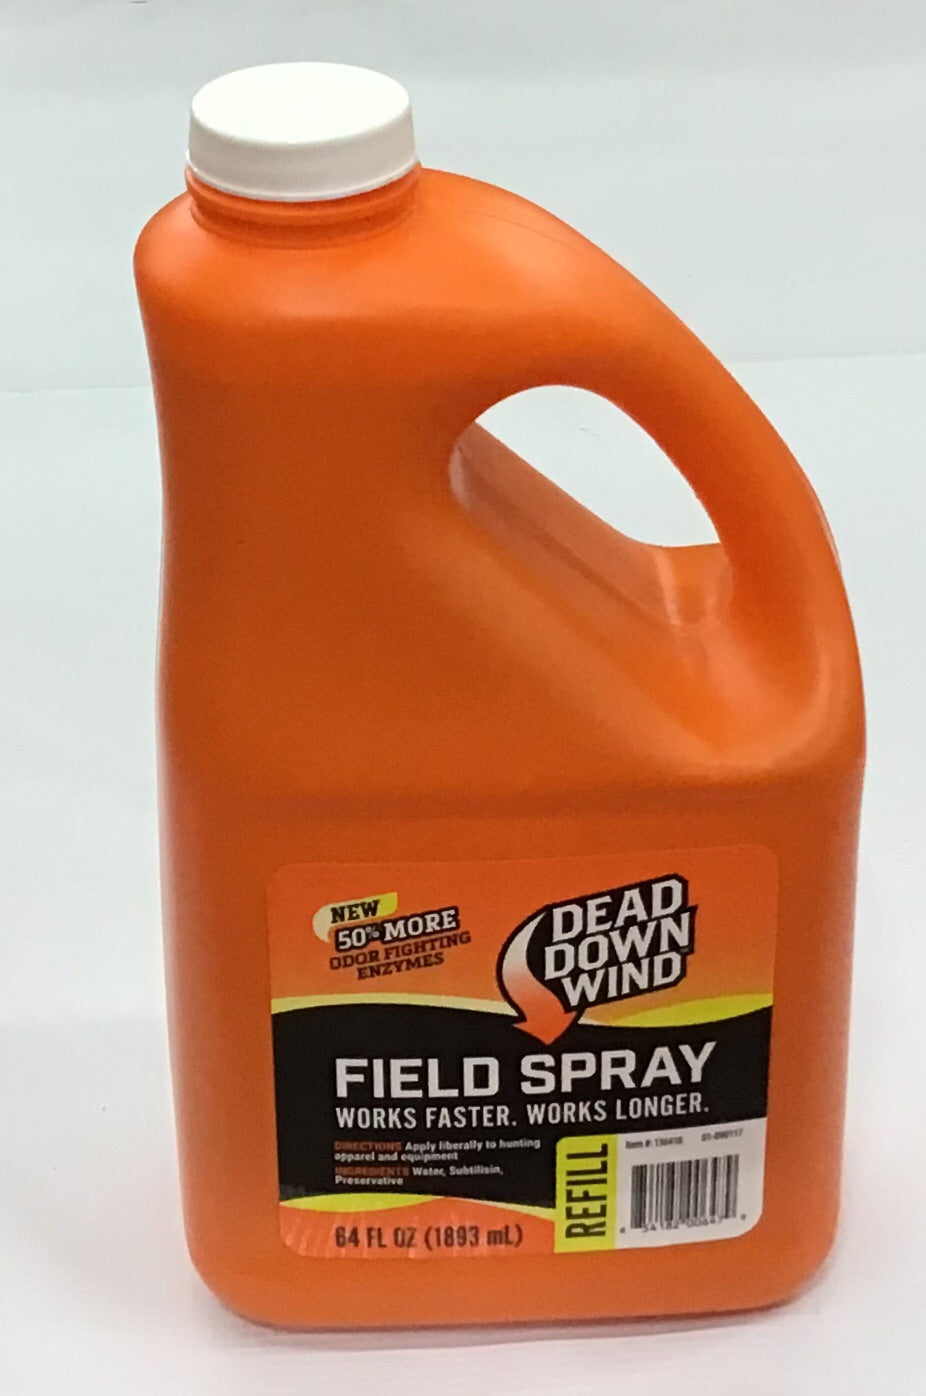 Dead Down Wind Field Spray Refill - 64 FL OZ